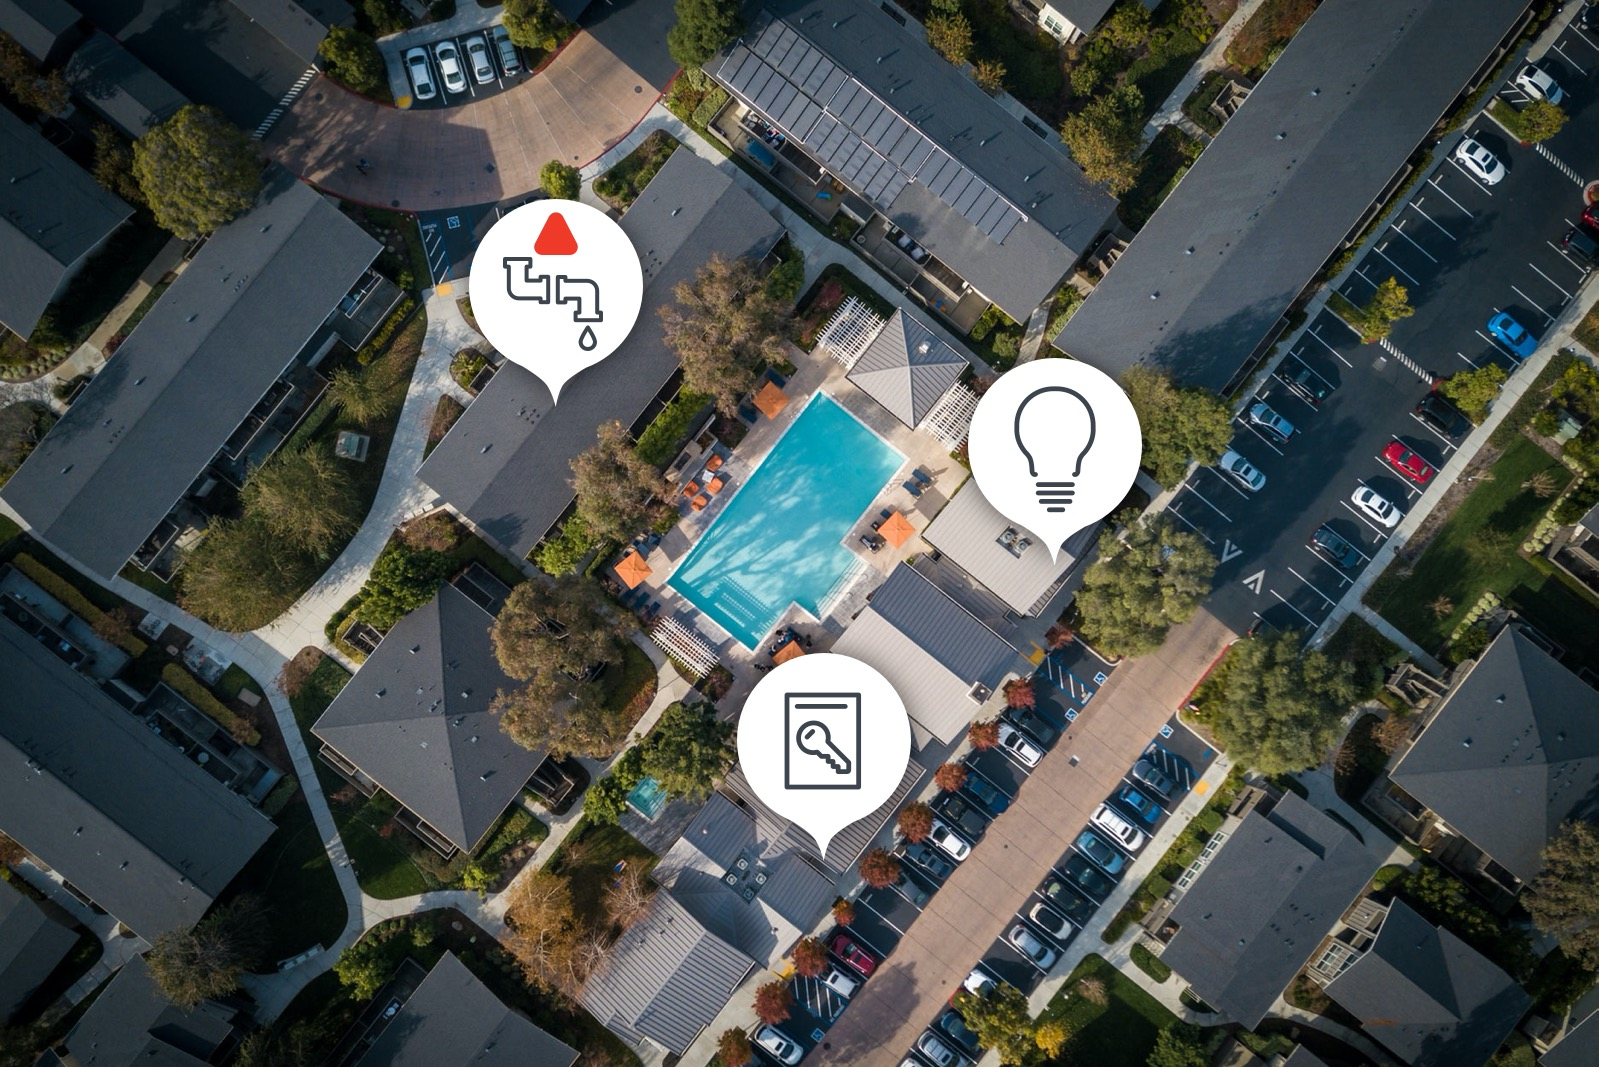 Aerial view of a low-rise multifamily community with a courtyard pool in the center